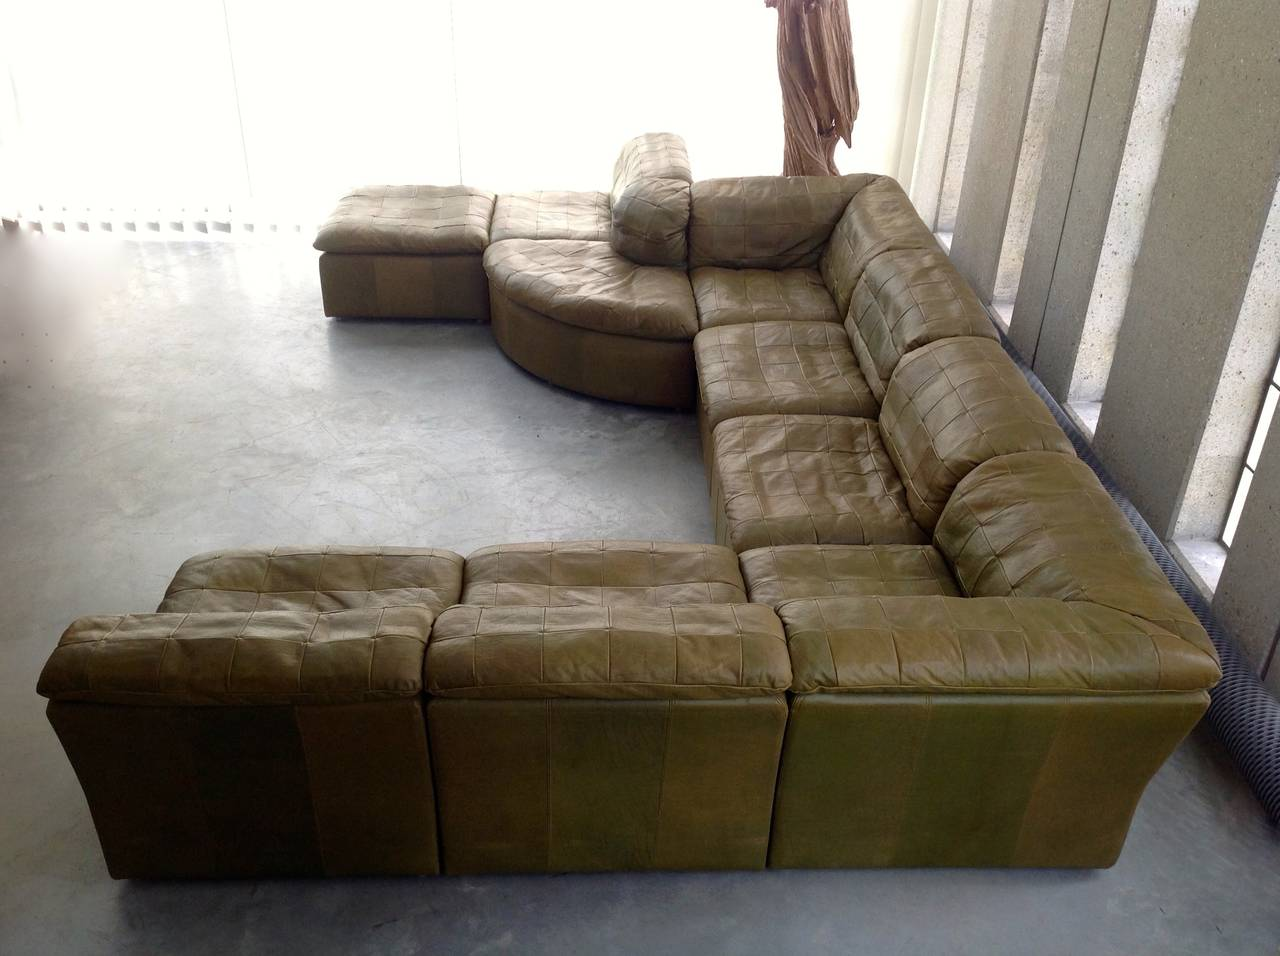 Patchwork Modular Sofa In Original Olive Green Leather, Beautiful Condition At 1stdibs